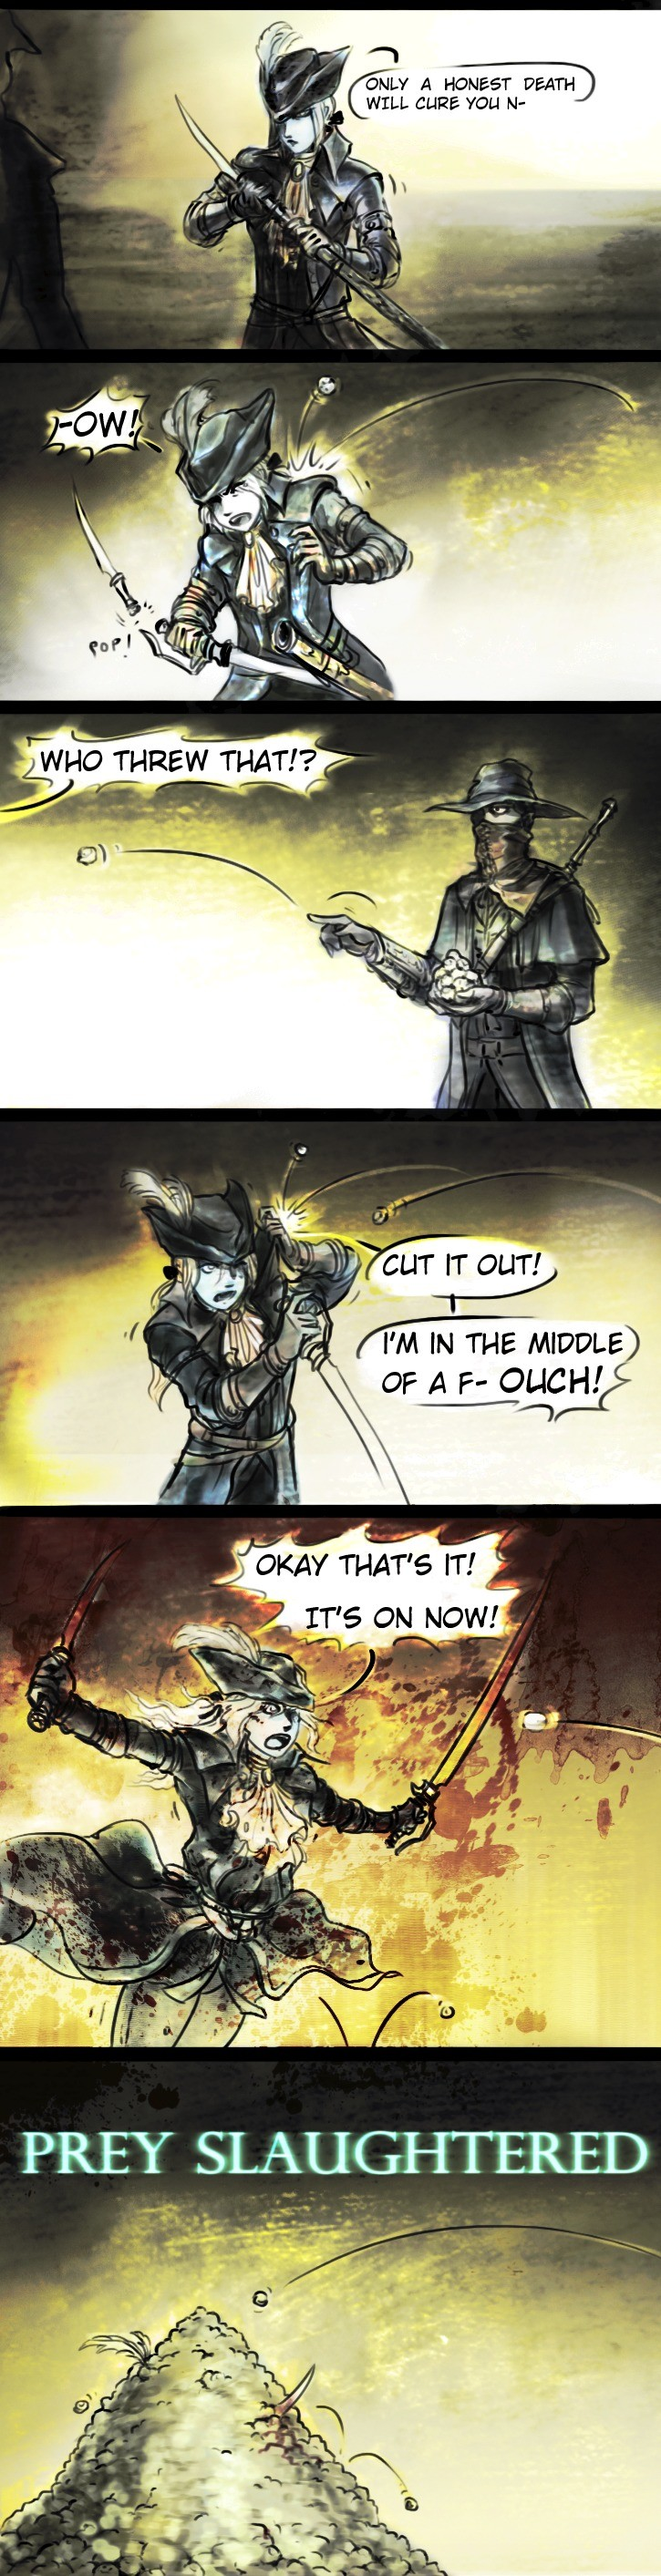 """Random soul comics. Lady Maria a qt Her soundtrack is amazing. . ONLY A HONEST DEATH , T WILL CHEF YOU """" IN we MIDDLE). Can't wait to get to 28 strength to be Guts"""